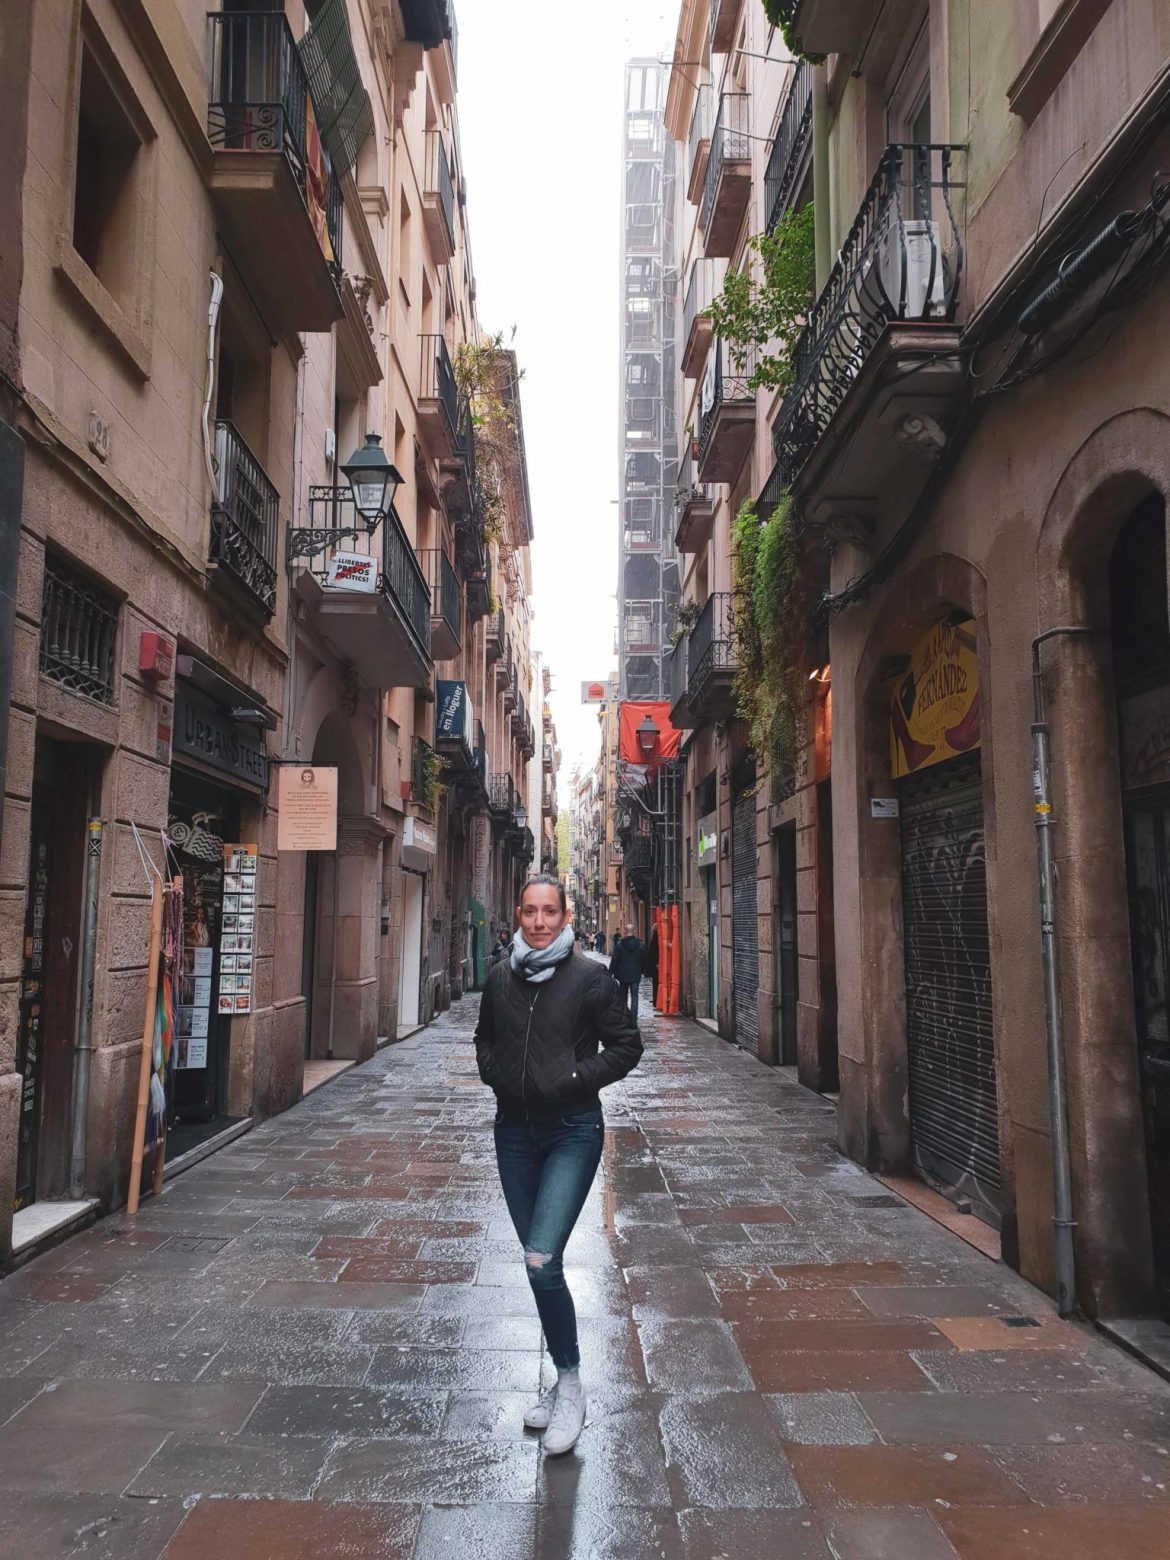 Barcelona travel guide by Michaella and Lina from Bulgarian lifestyle blog Quite a Looker / Gothic Quarter